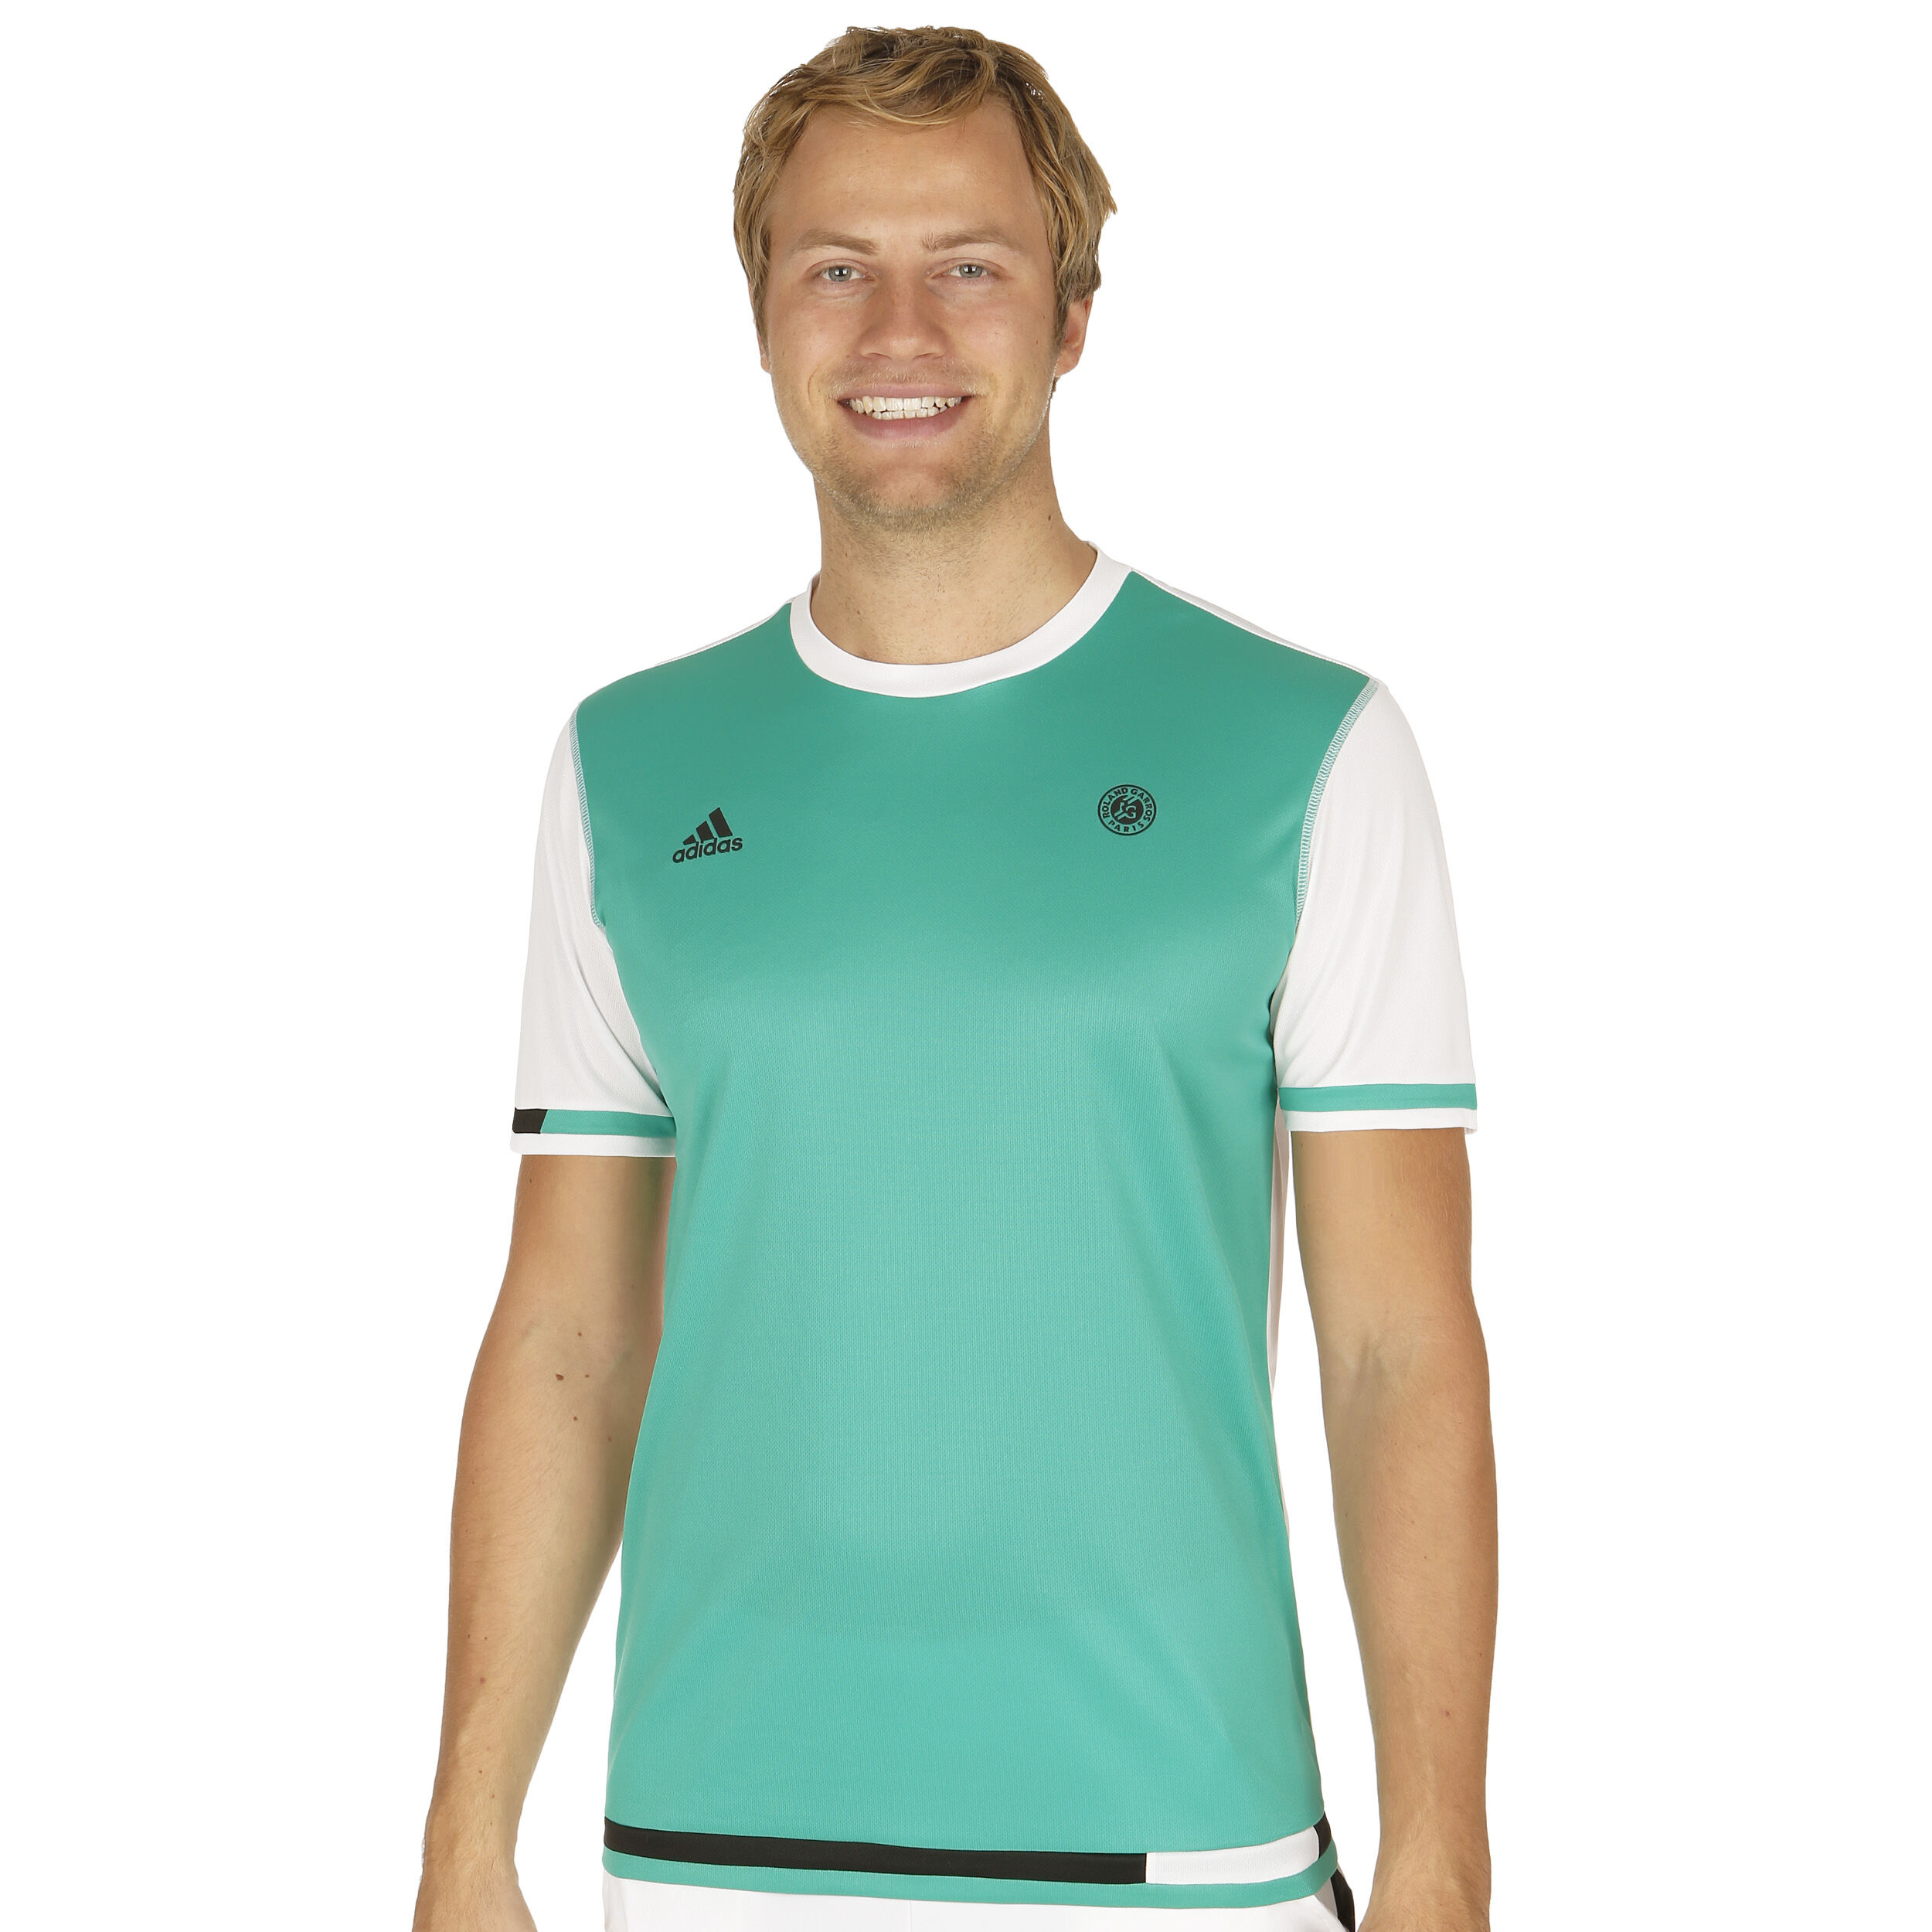 Hacer bien Lógicamente Vaticinador  camiseta adidas roland garros where to buy aae35 a9971